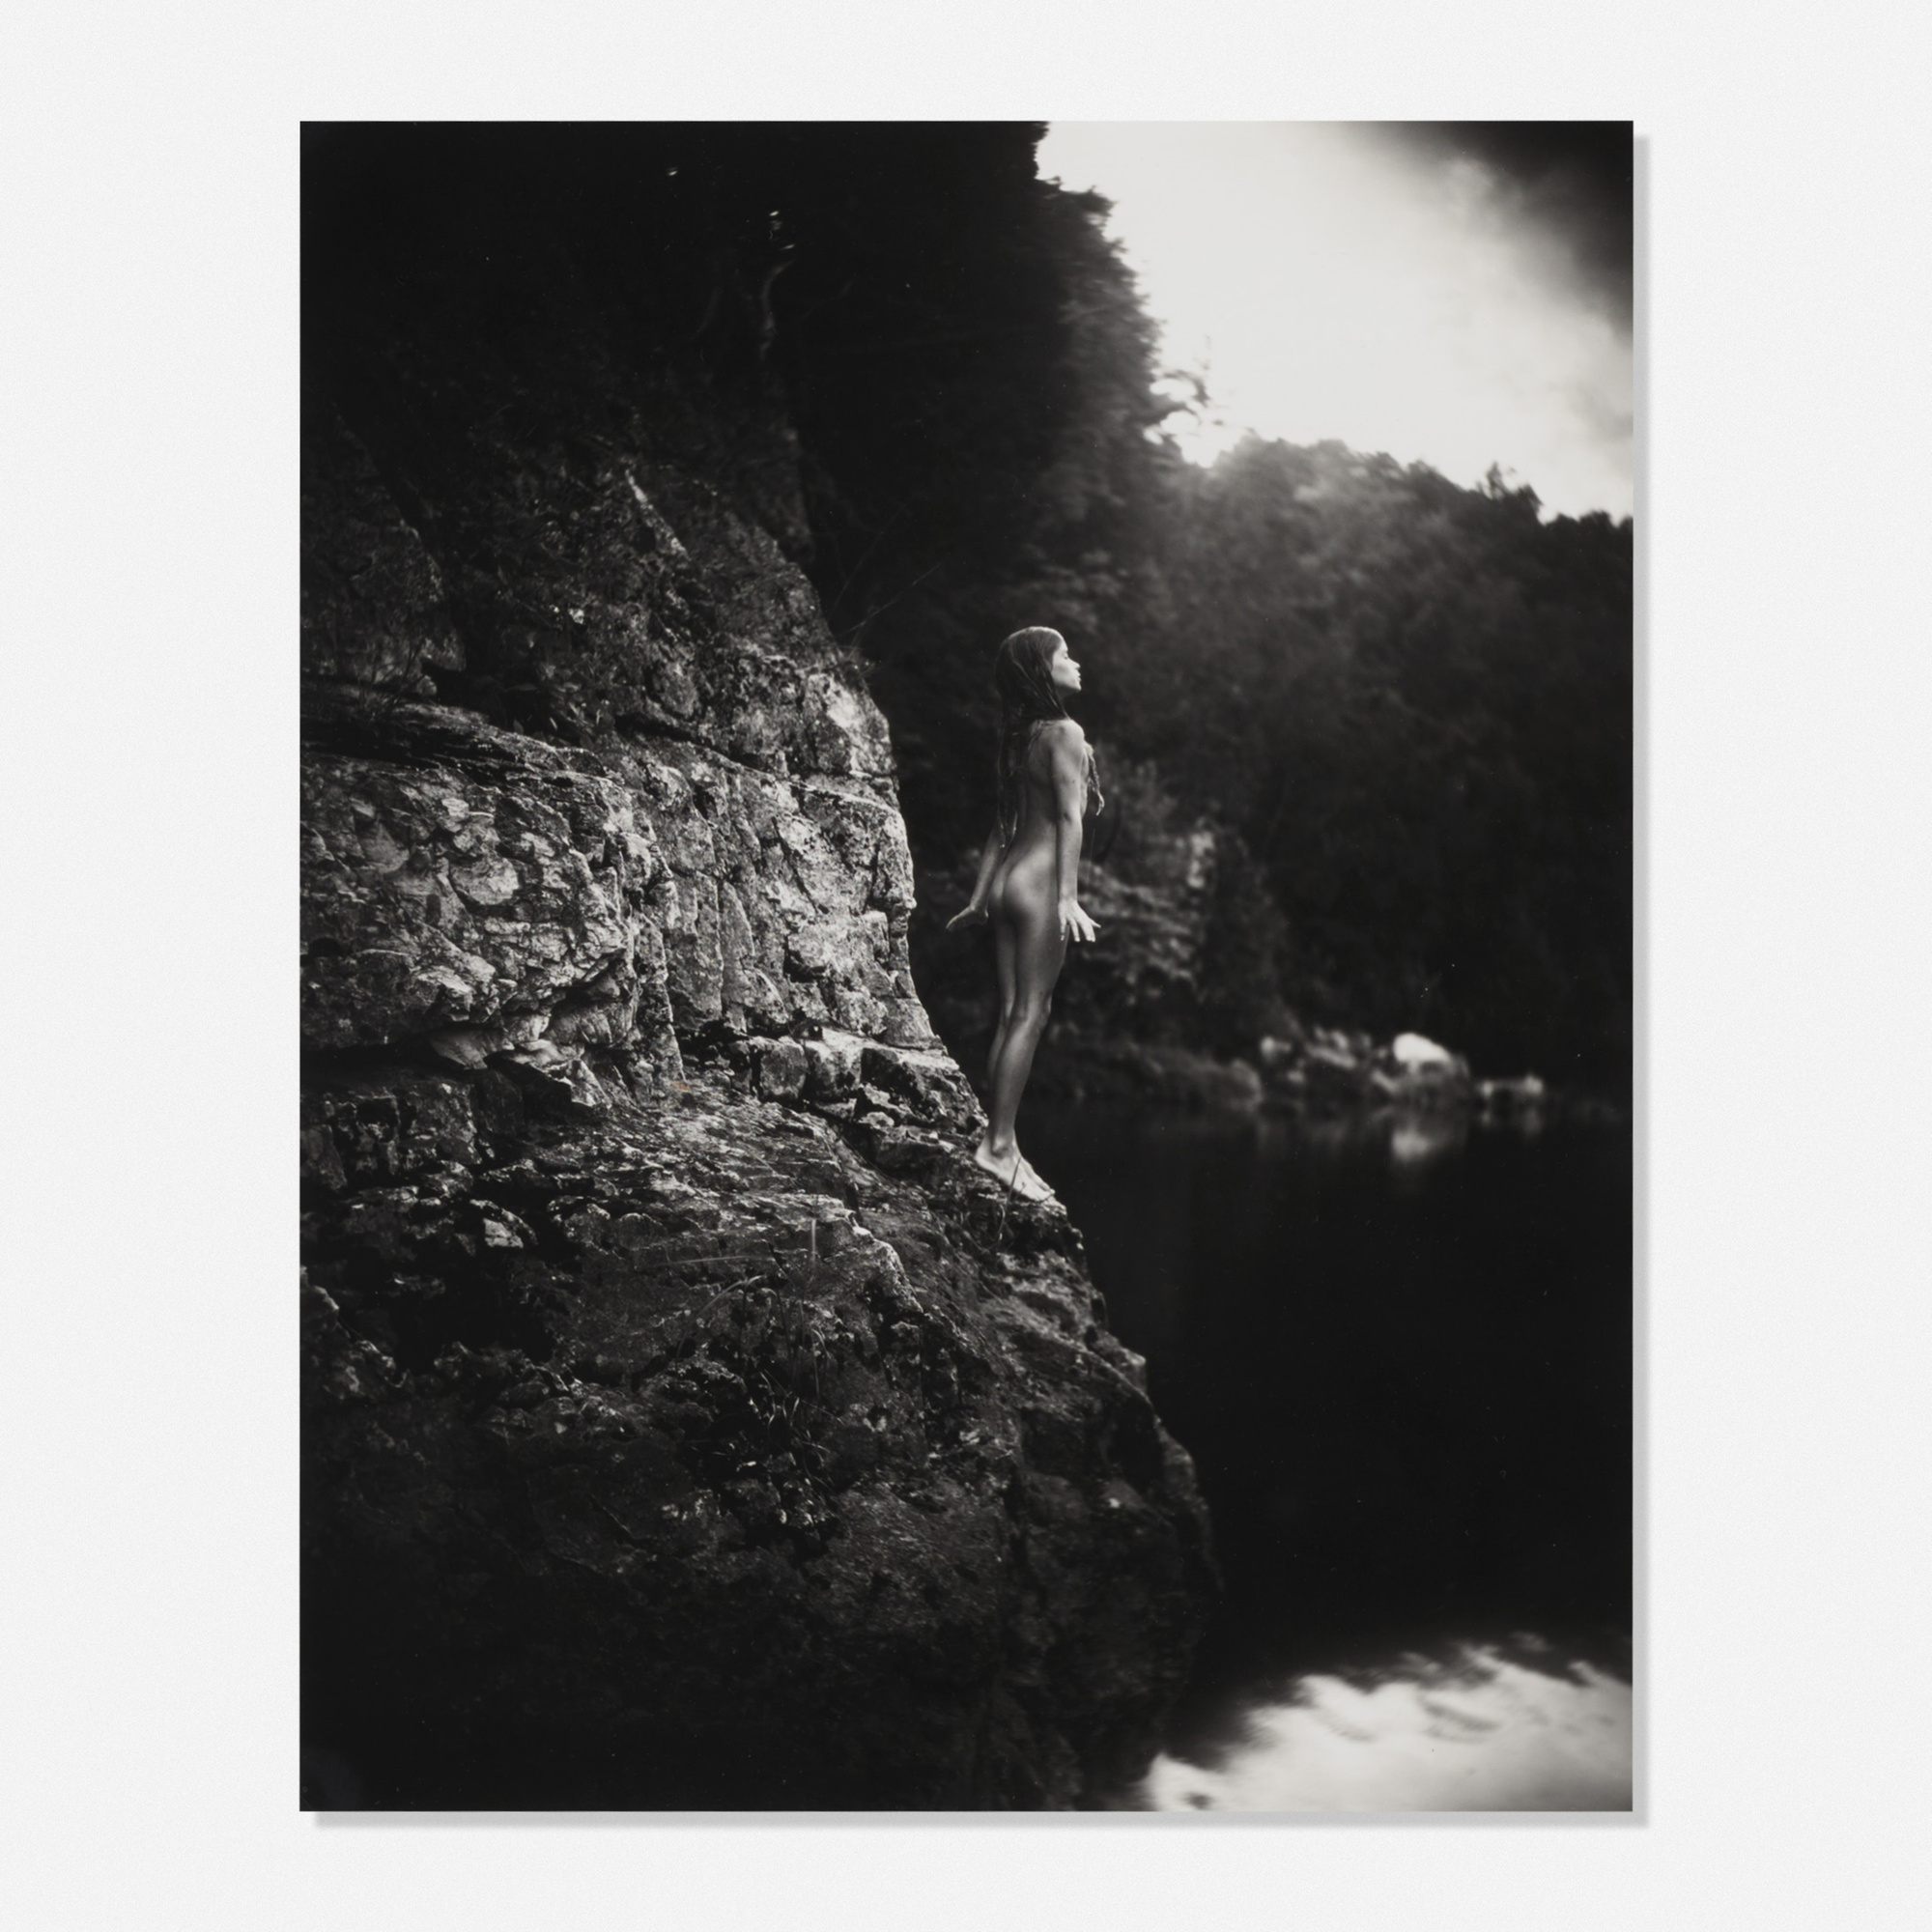 240: Sally Mann / Jessie at 9 (1 of 1)